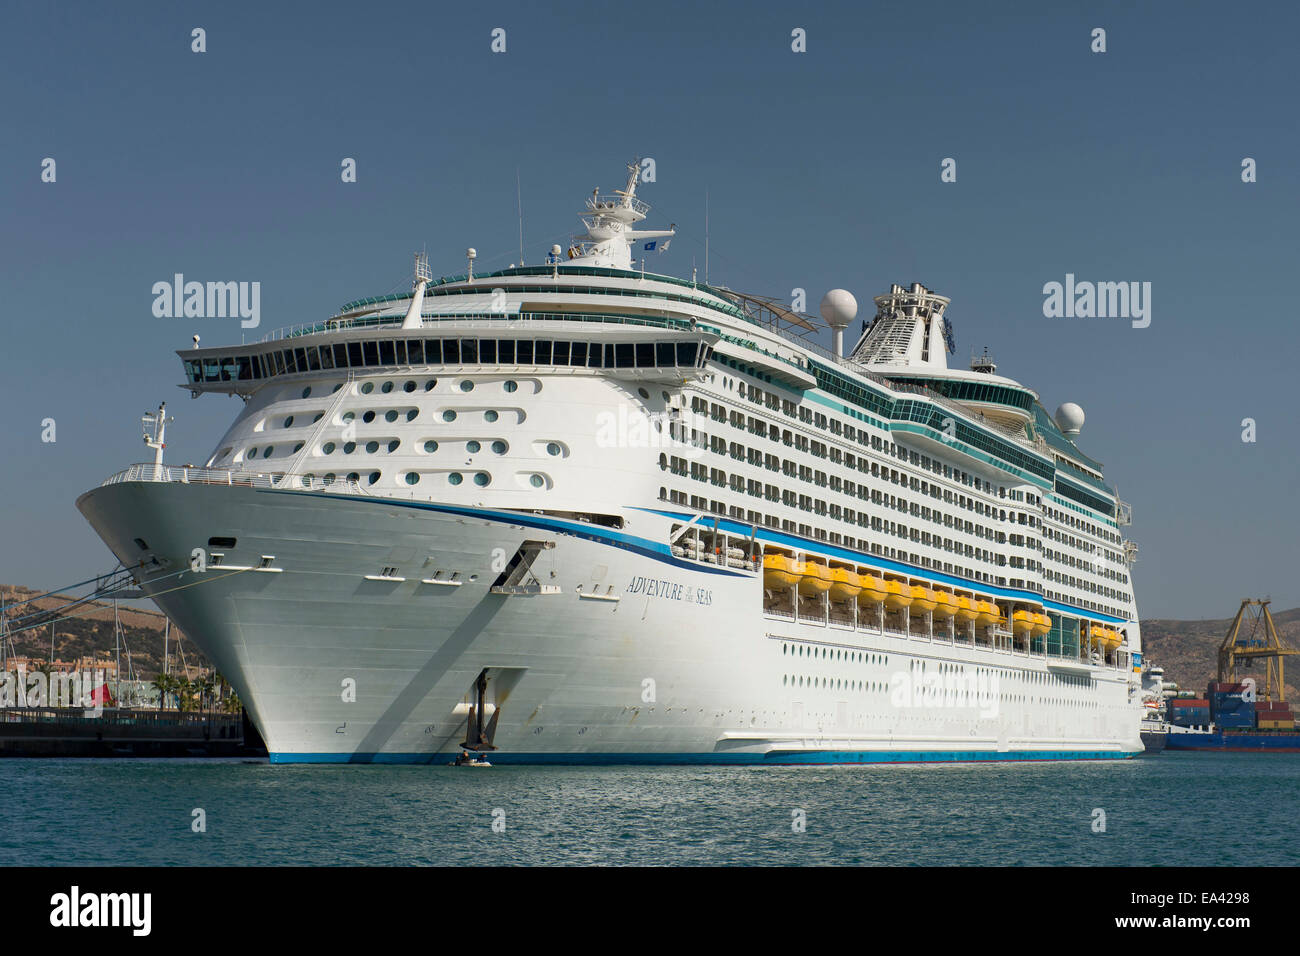 Royal Caribbean's Adventurer Of The Seas Cruise Ship In